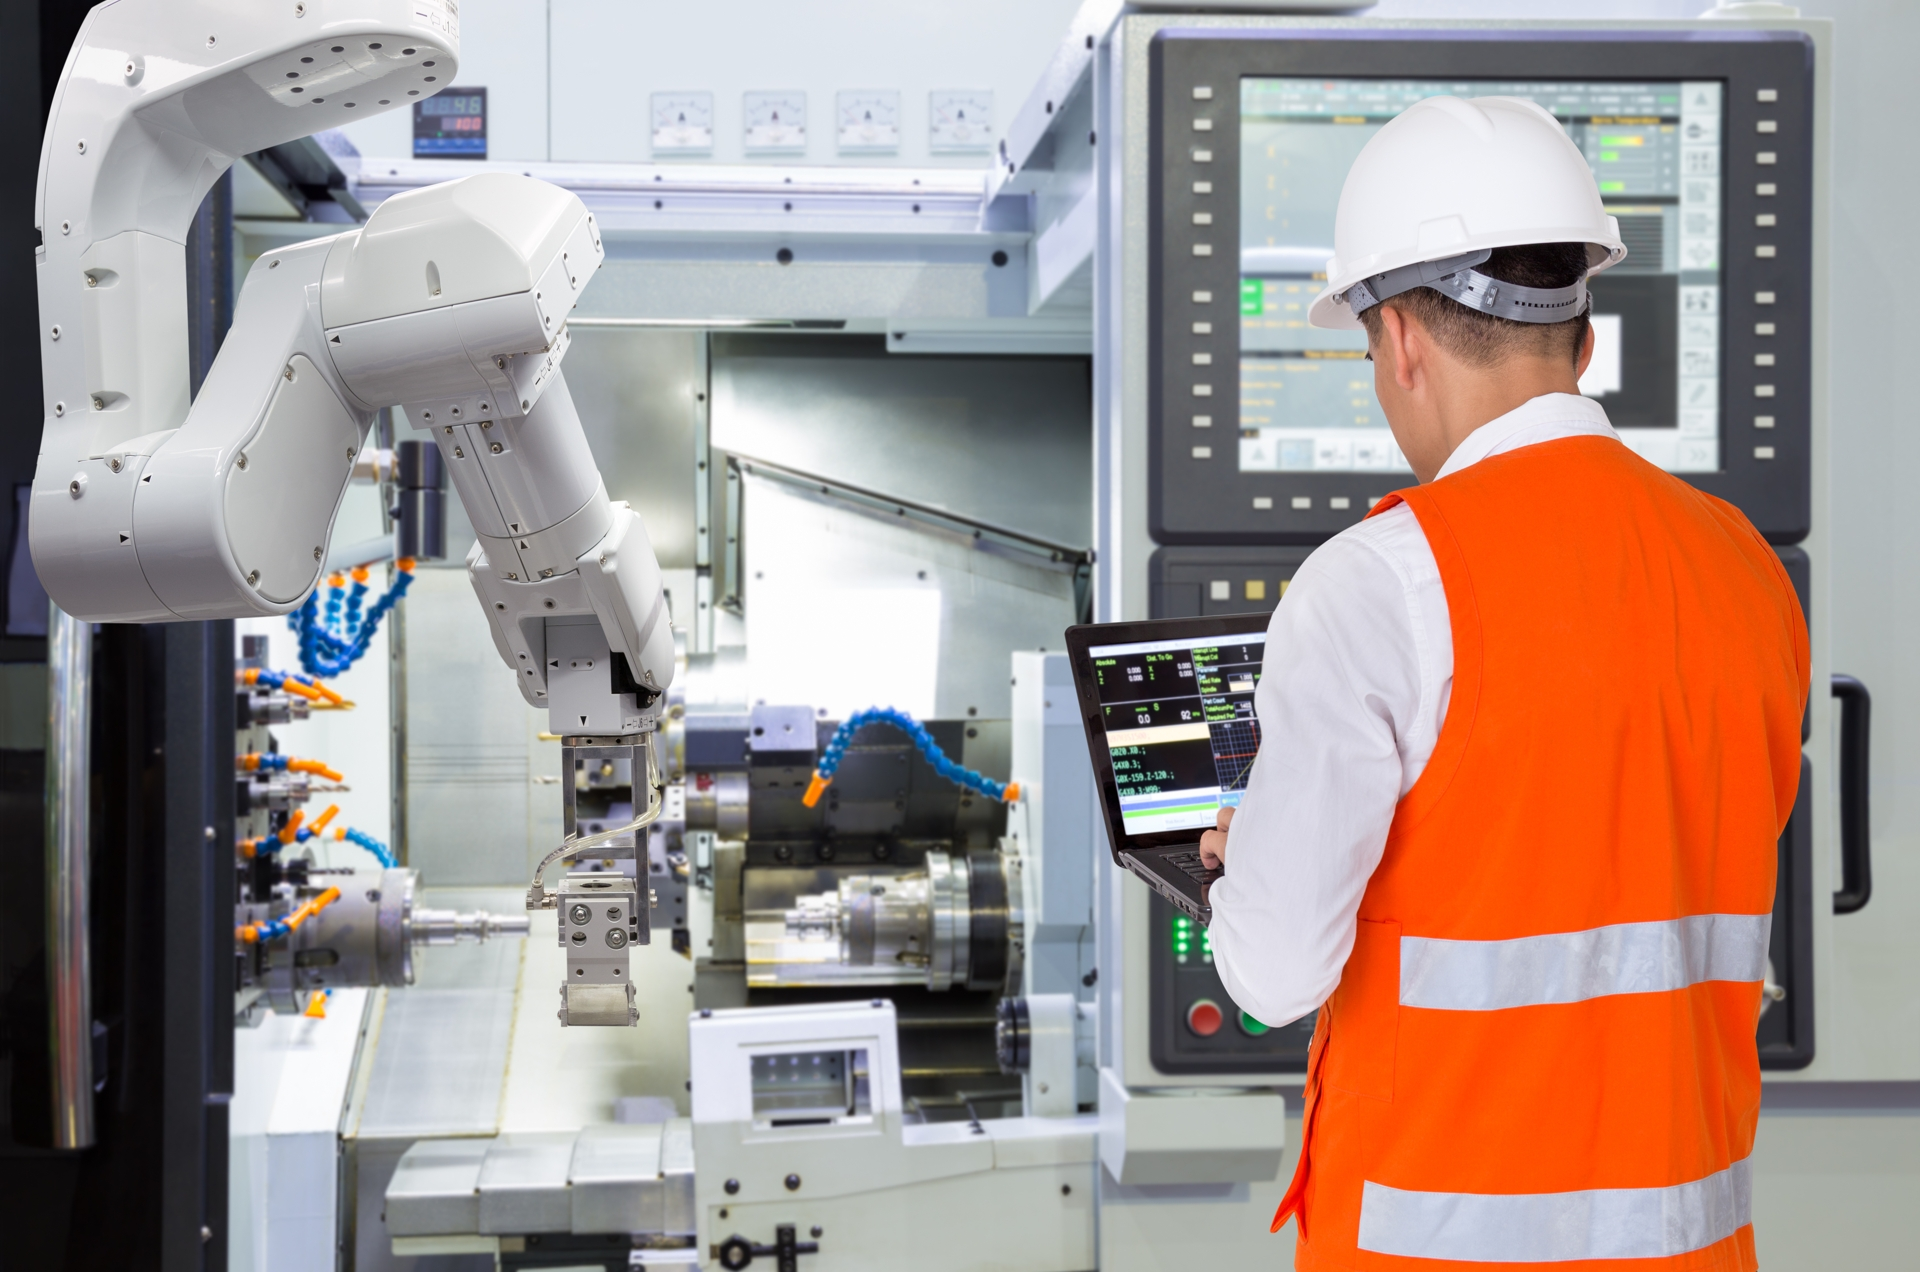 IT Specialist working in Industry 4.0 facility